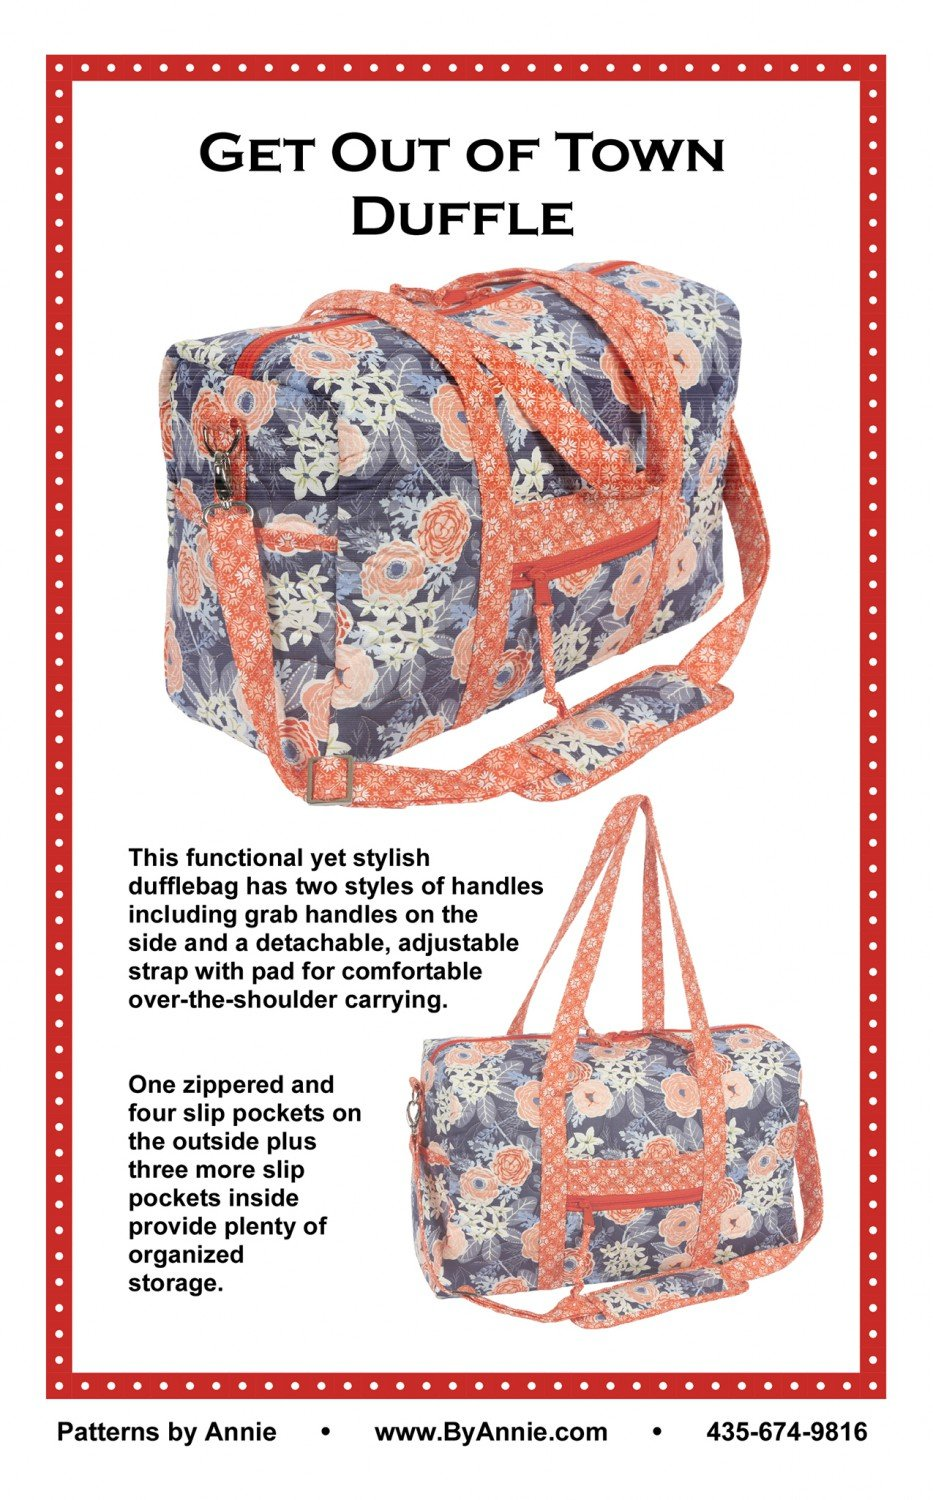 Get Out of Town Duffle Bag 2.0 (Patterns by Annie)